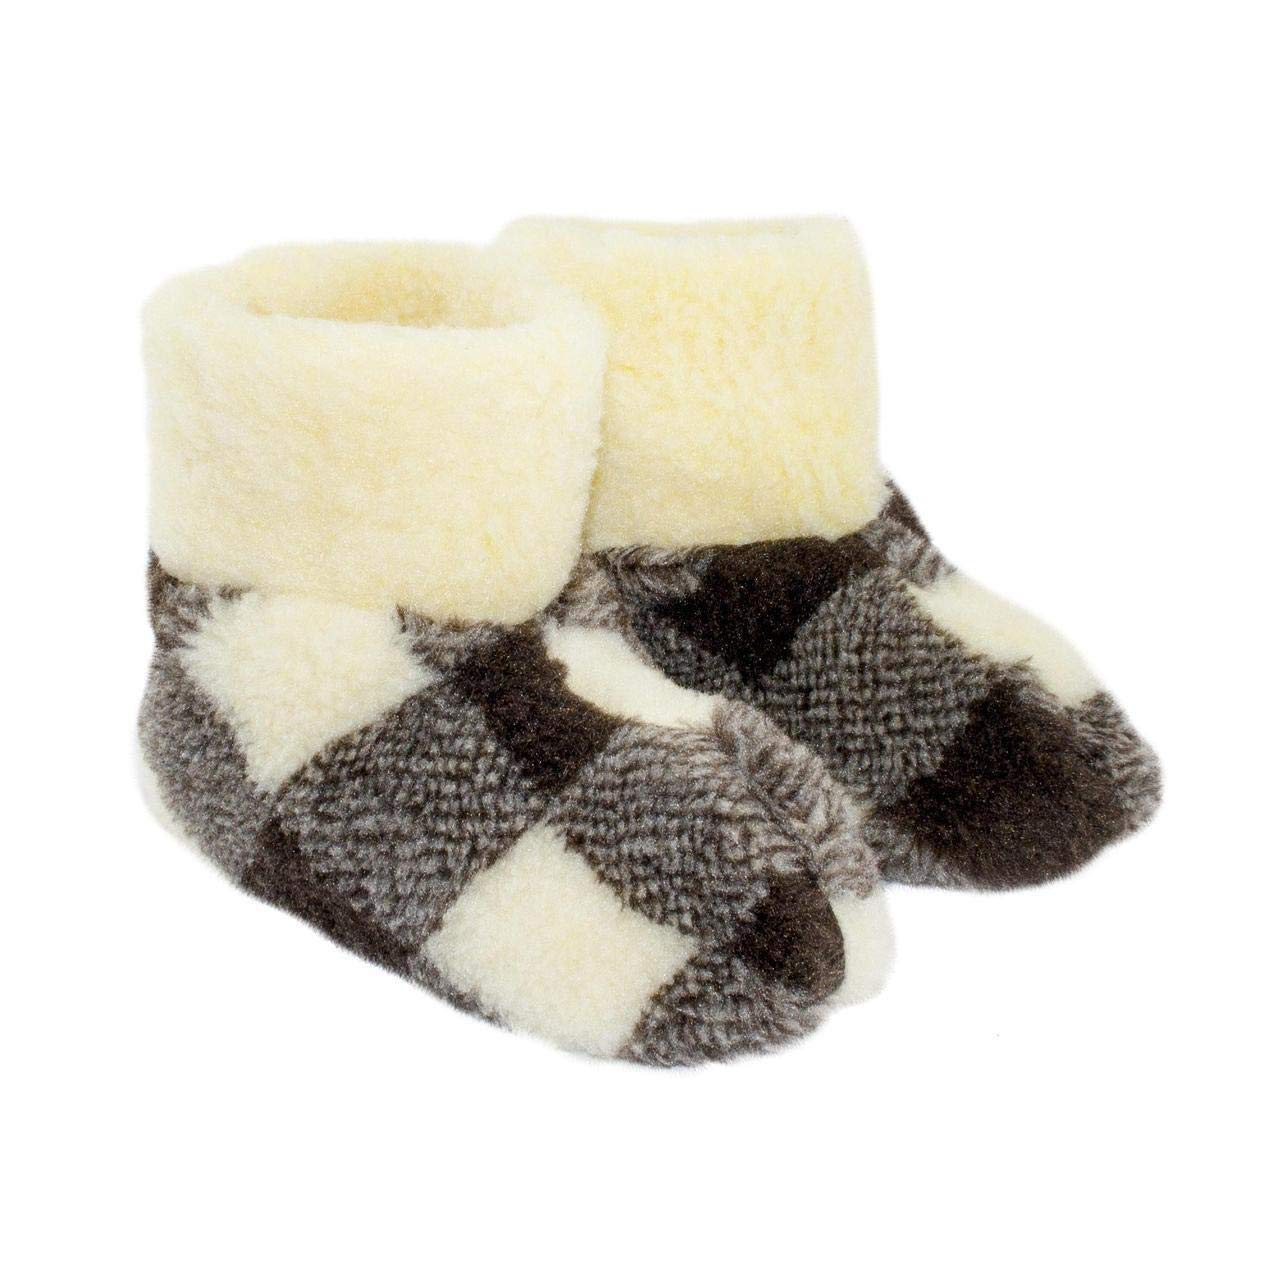 Sheepskin Slippers Soft-Sole Slippers for Home